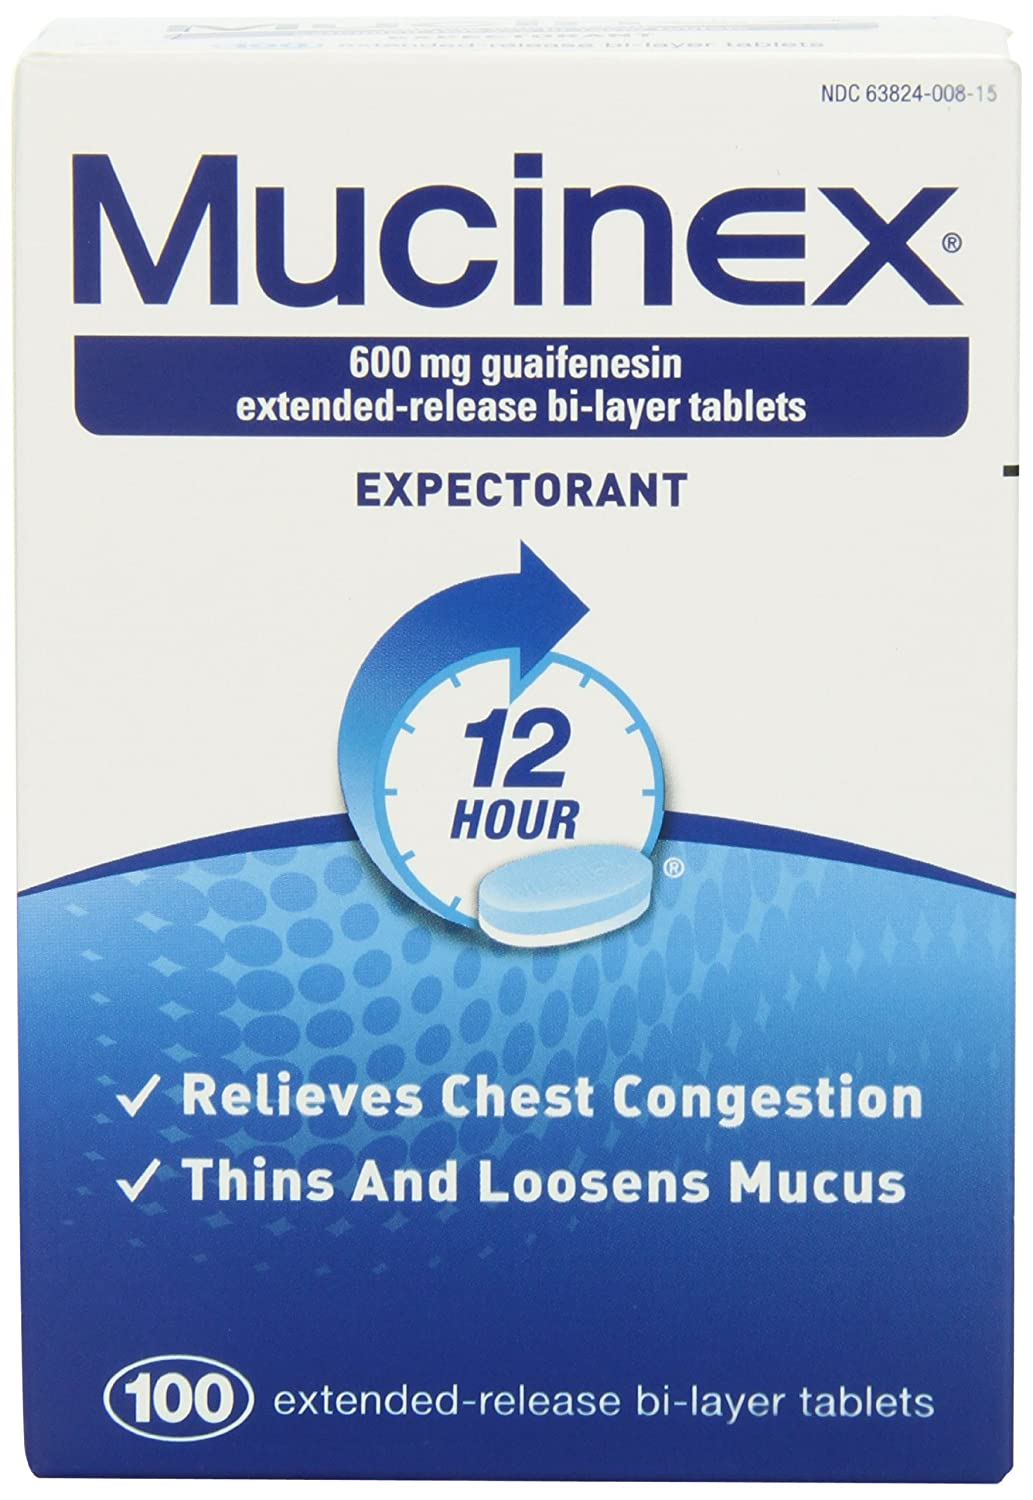 mucinex 12 hour chest congestion expectorant tablets